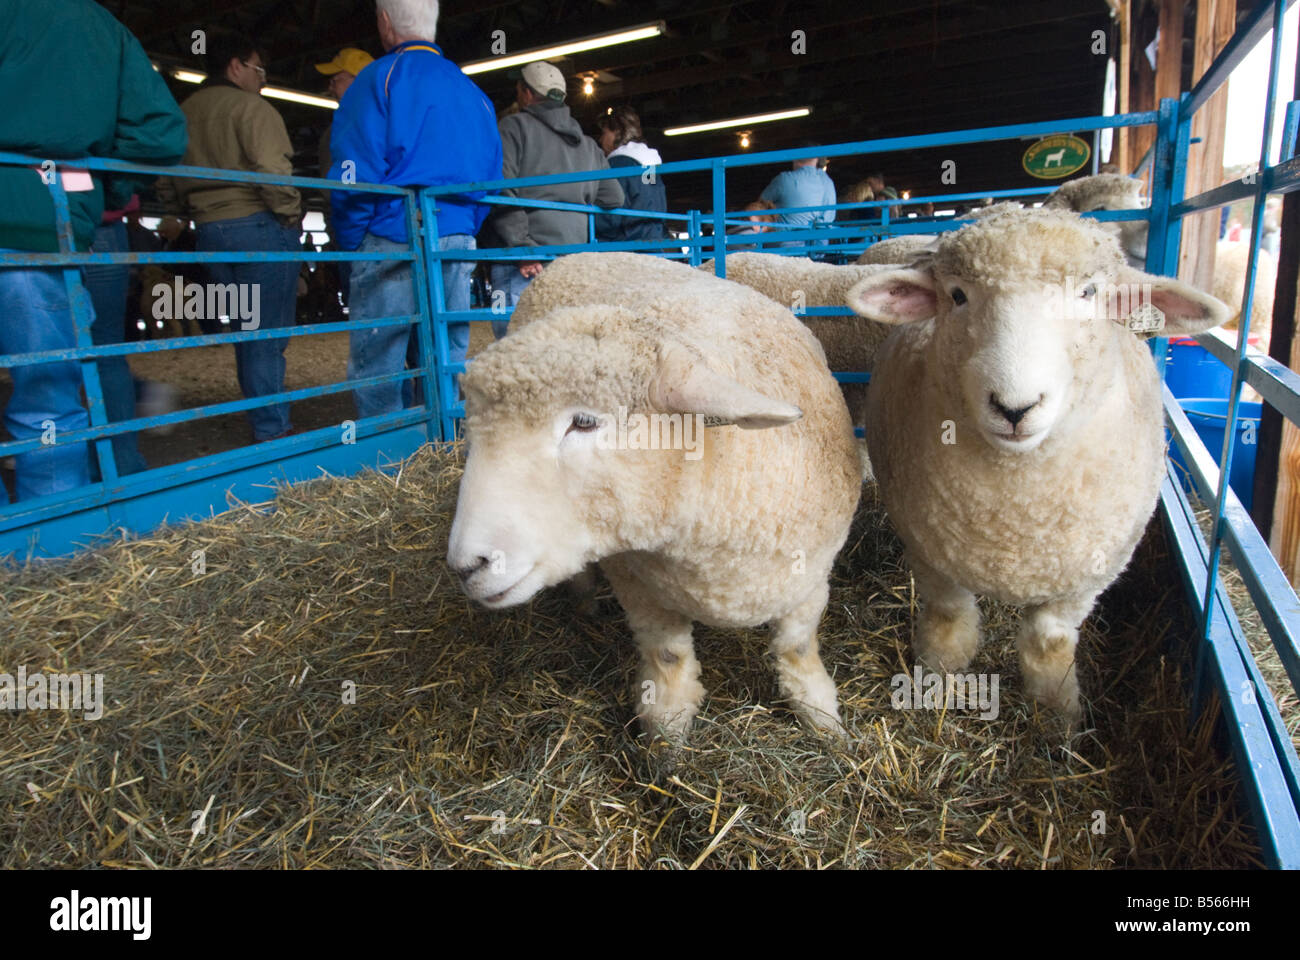 Romney Sheep at the annual Sheep and Wool Festival in Rhinebeck New York - Stock Image